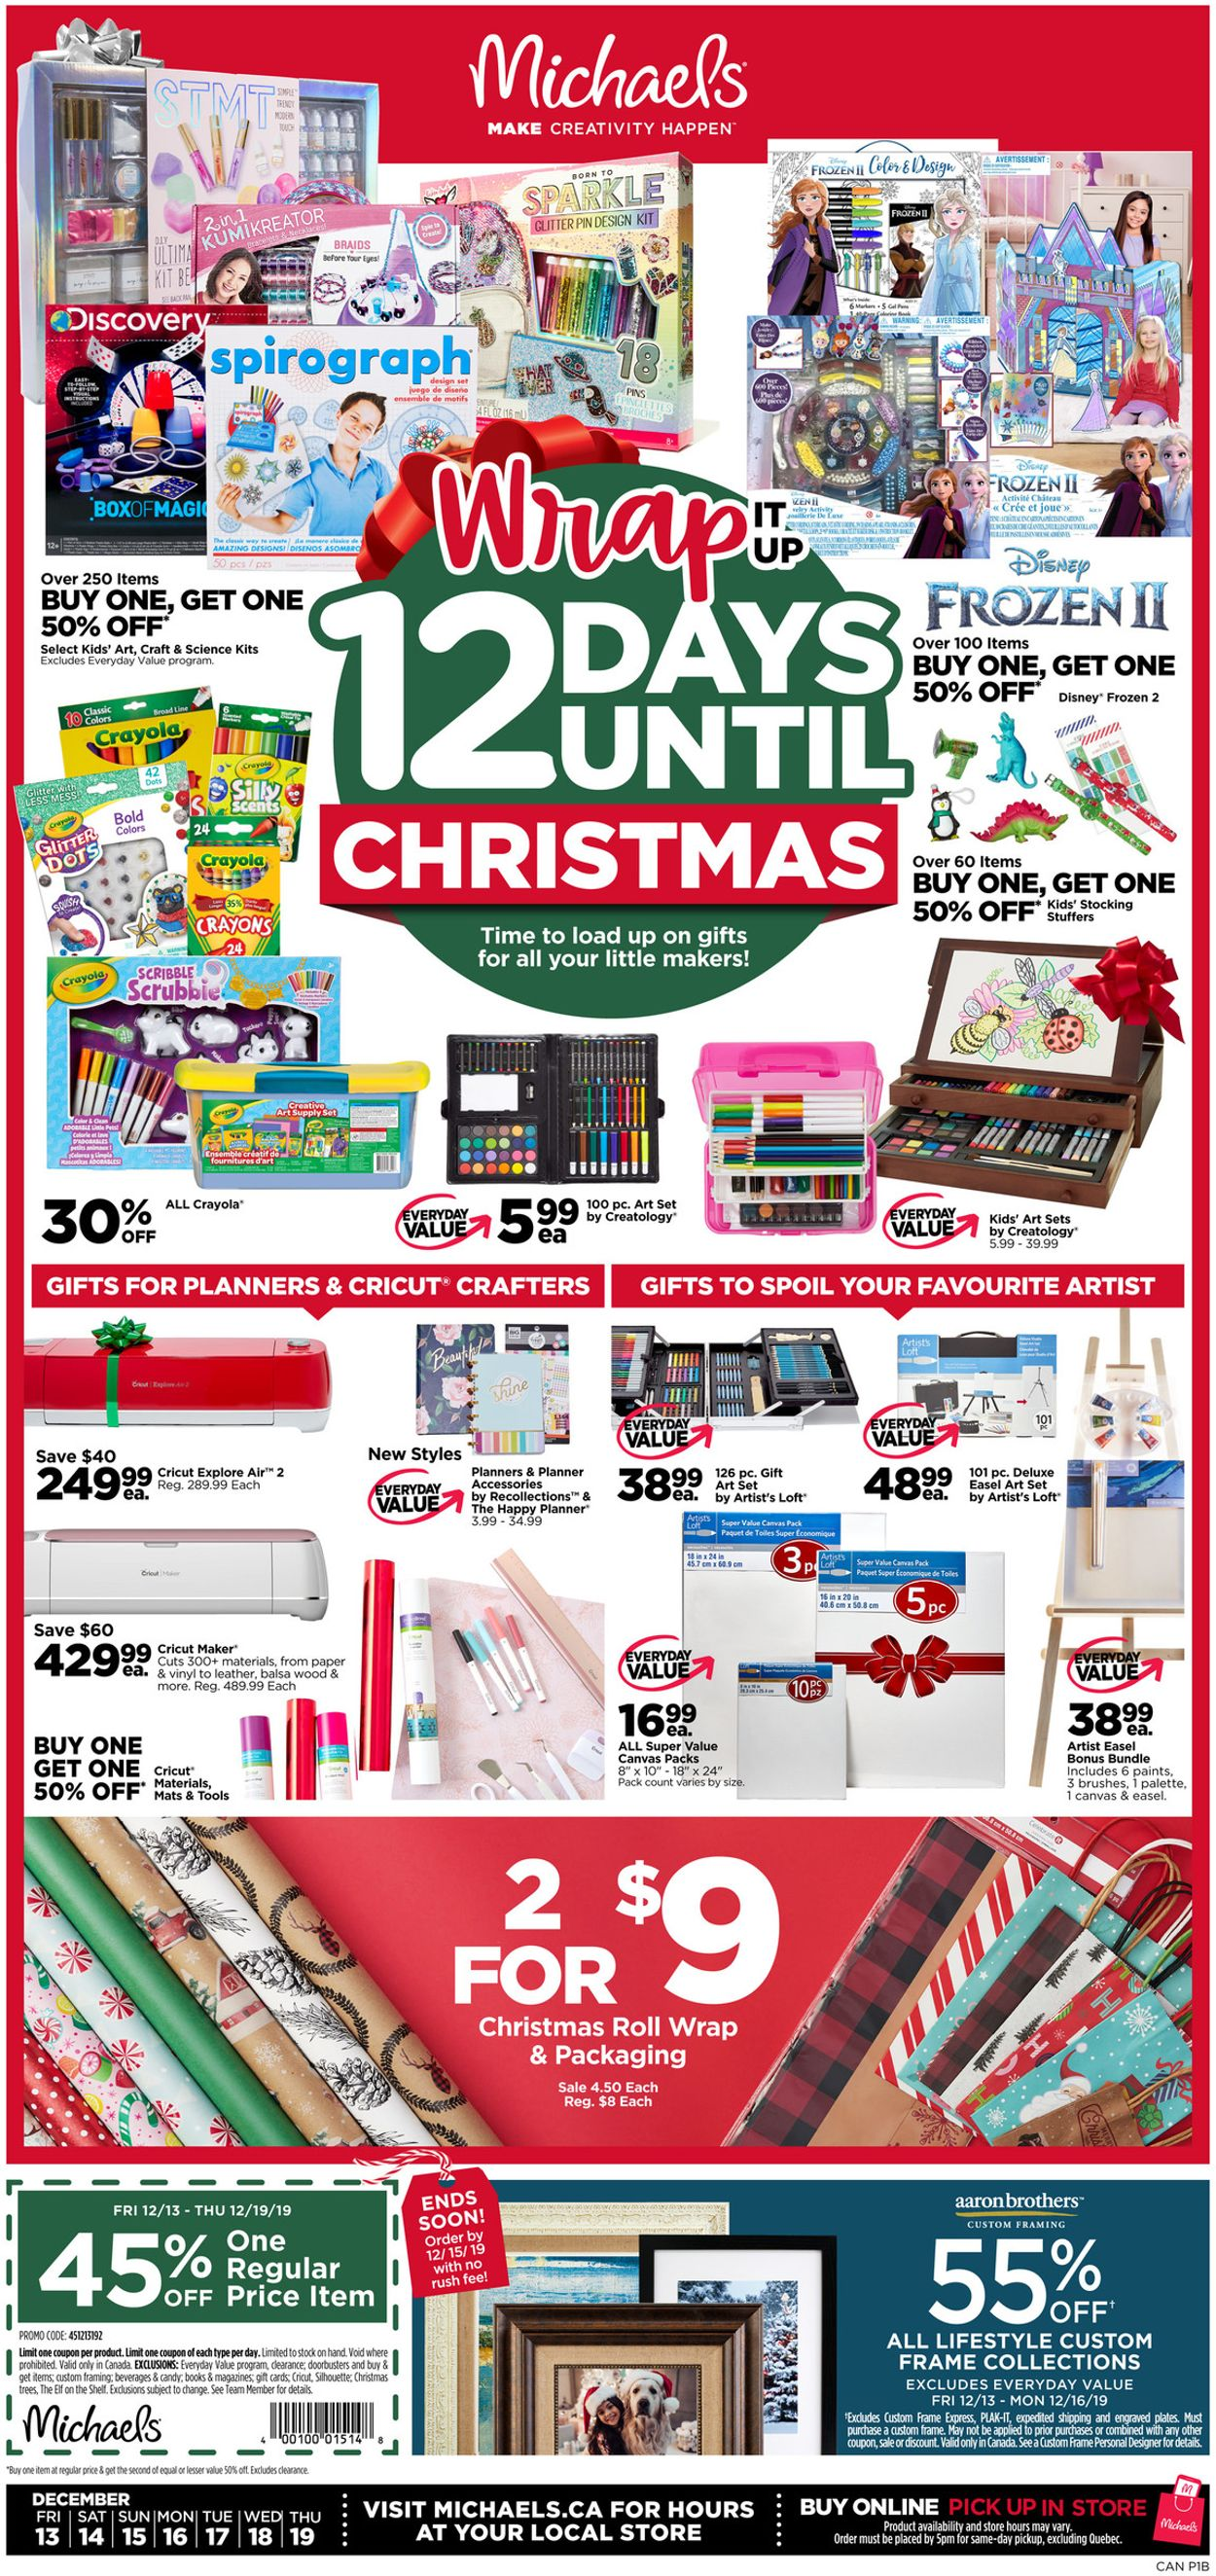 Michaels - Christmas 2019 Flyer